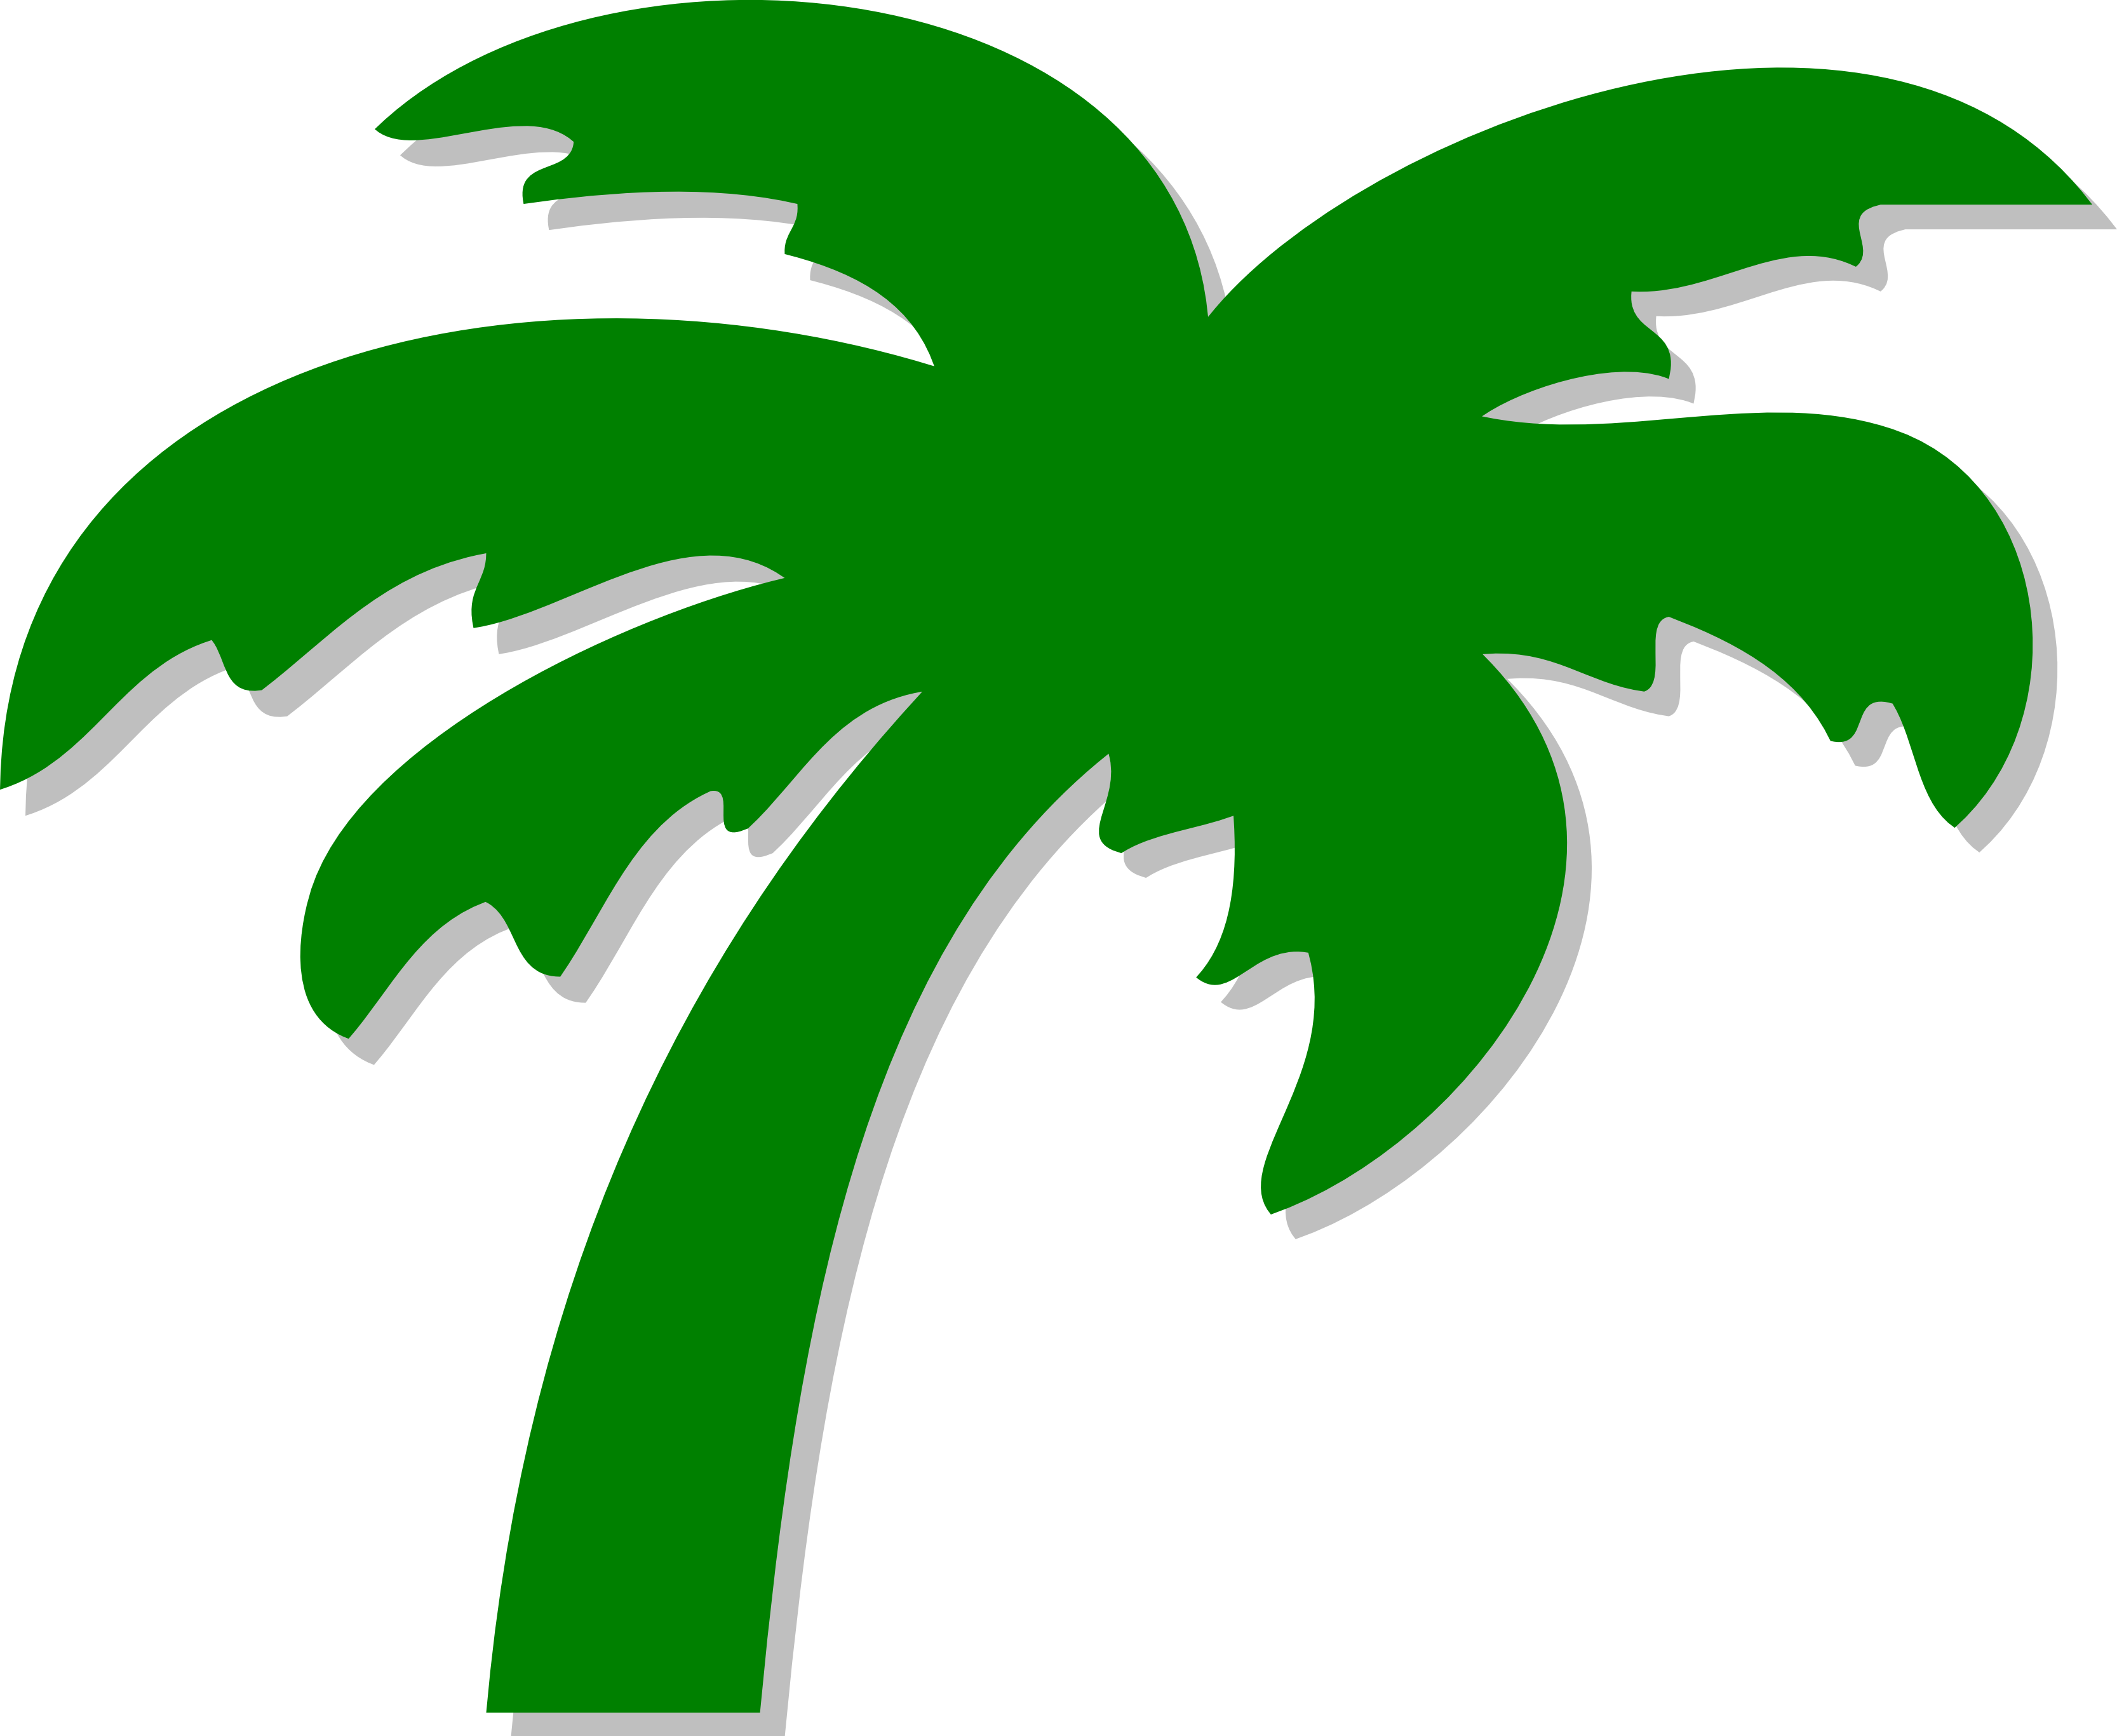 Palm Tree Clip Art | Clipart Panda - Free Clipart Images ...